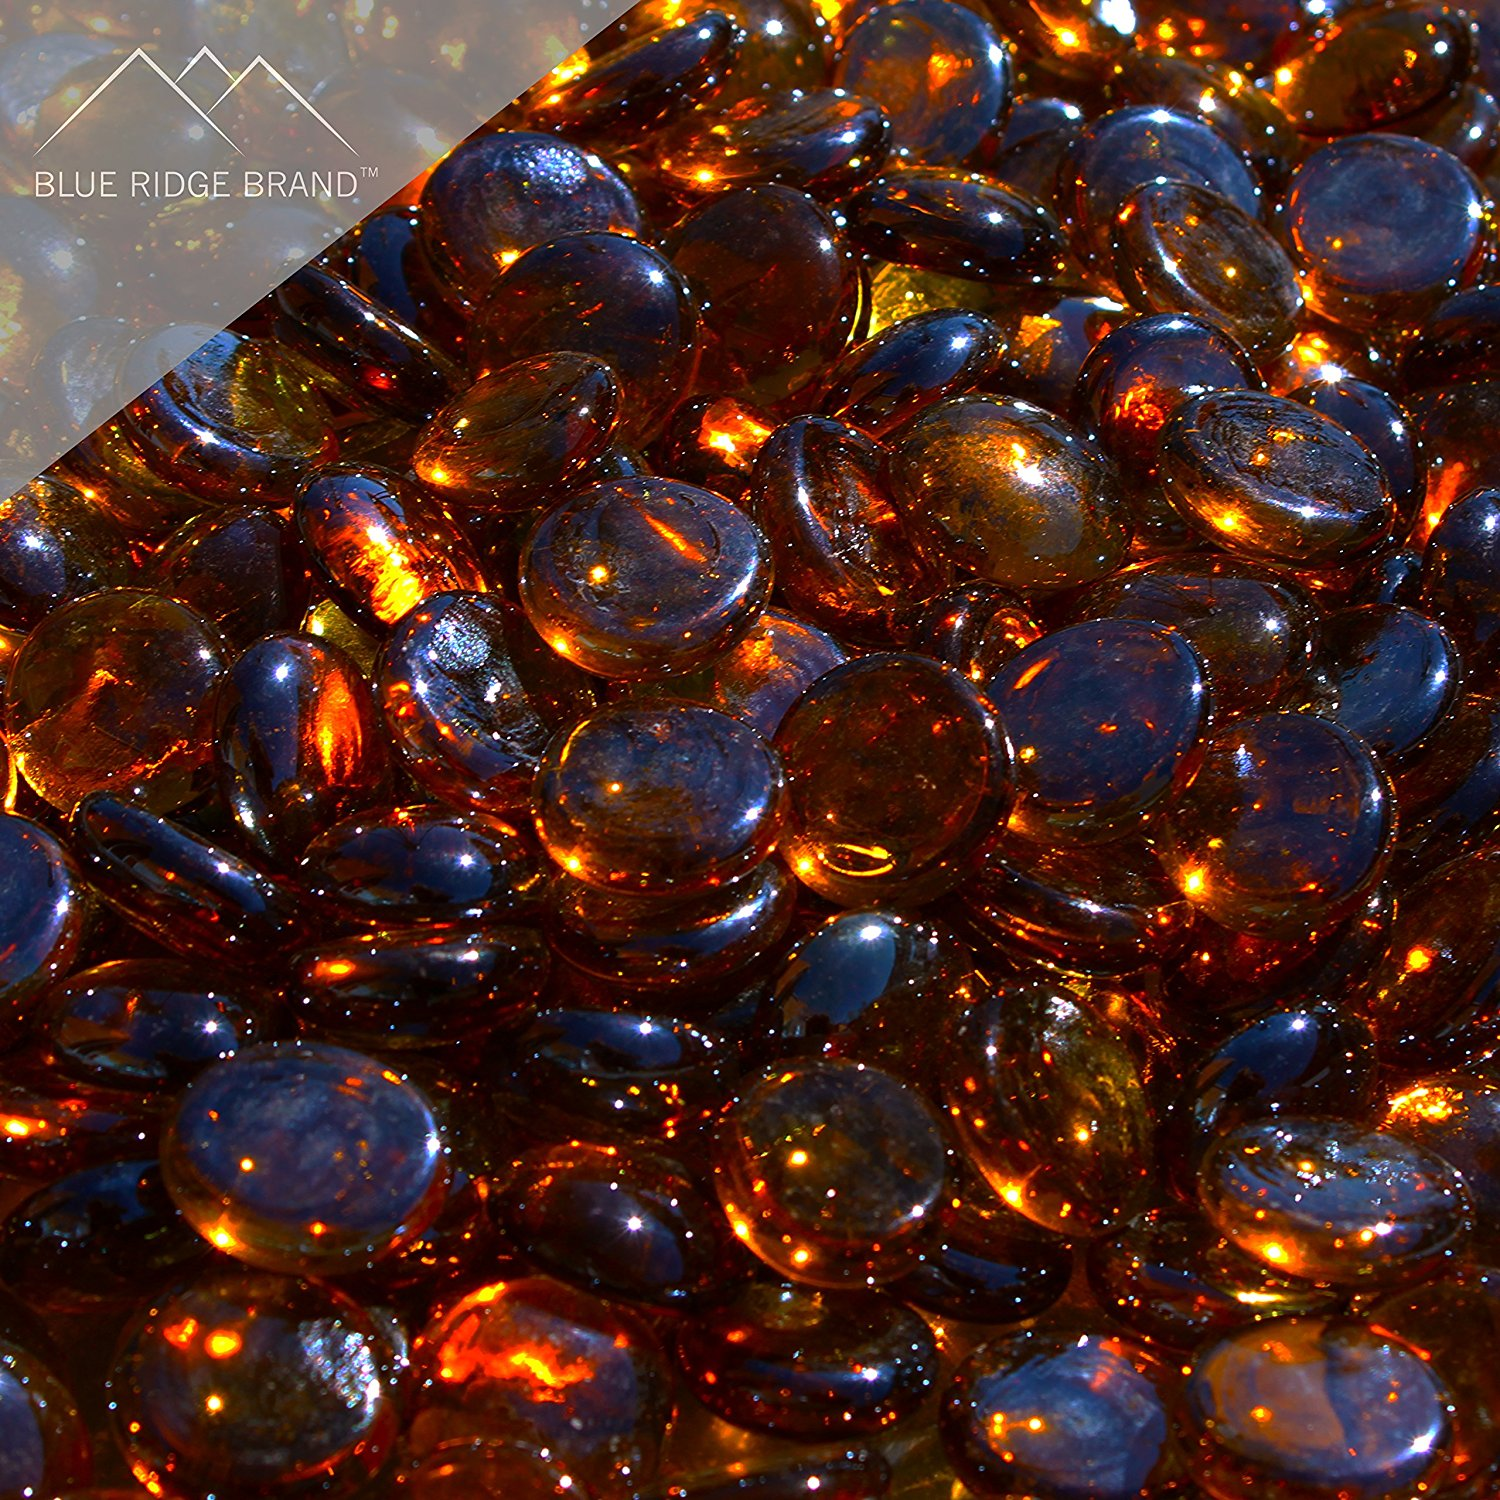 "Fire Pit Glass - Dark Amber Reflective Fire Glass Beads 3/4"" - Brown Reflective Fire Pit Glass Rocks - Blue Ridge Brand™ Reflective Glass Beads for Fireplace and Landscaping 3, 5, 10, 20, 50 Pounds"